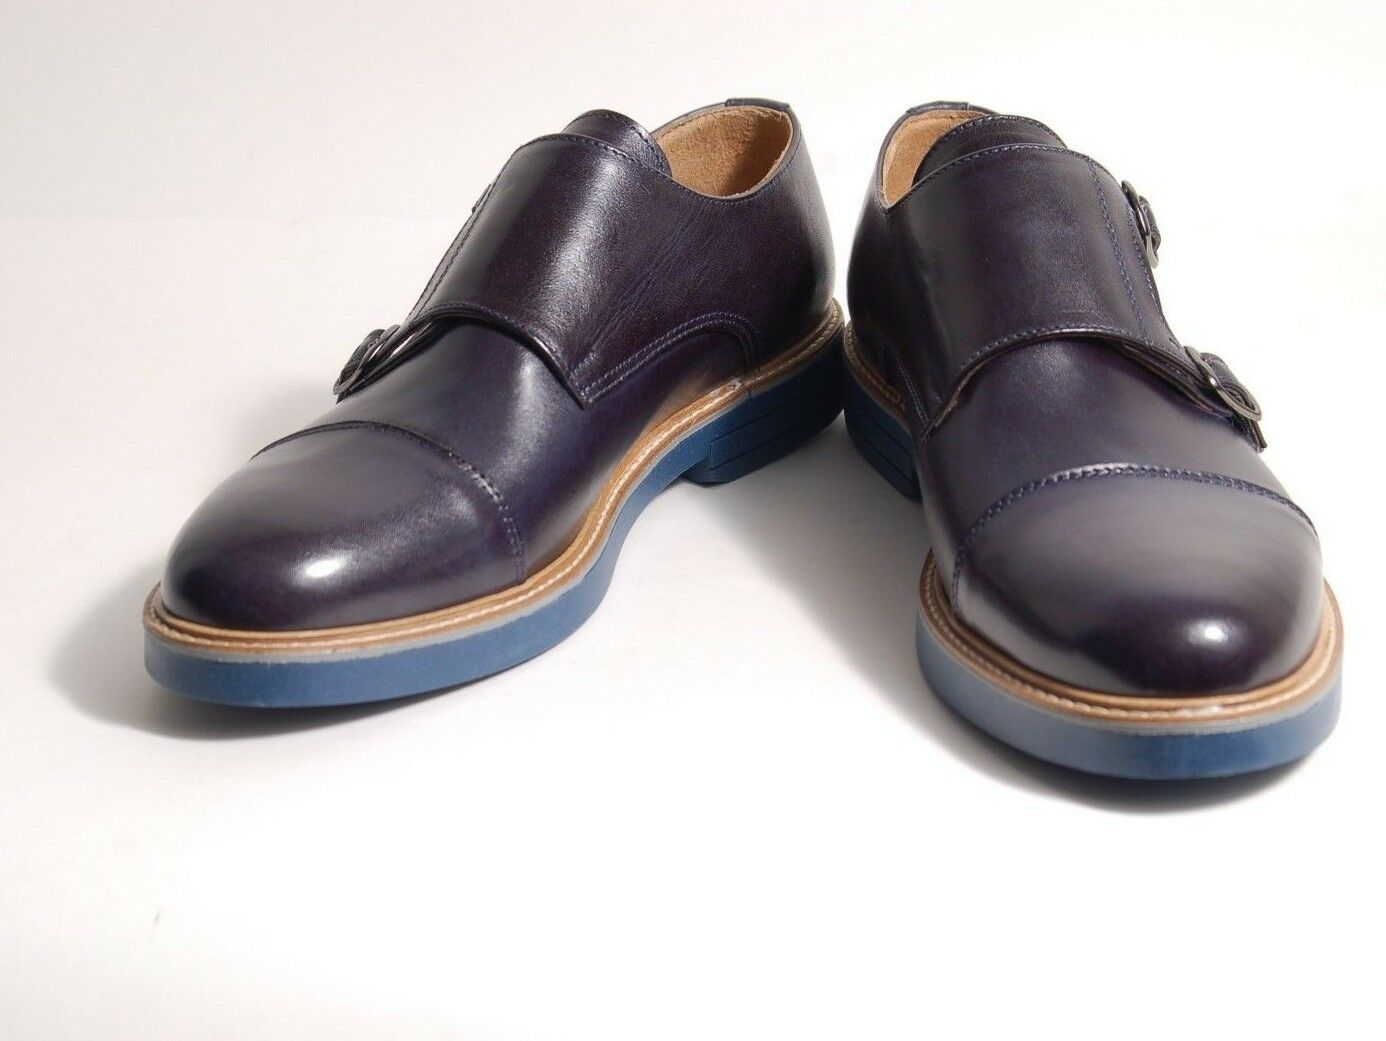 Acc Hand Made, Italian shoes Buckles Monkstrap 9001